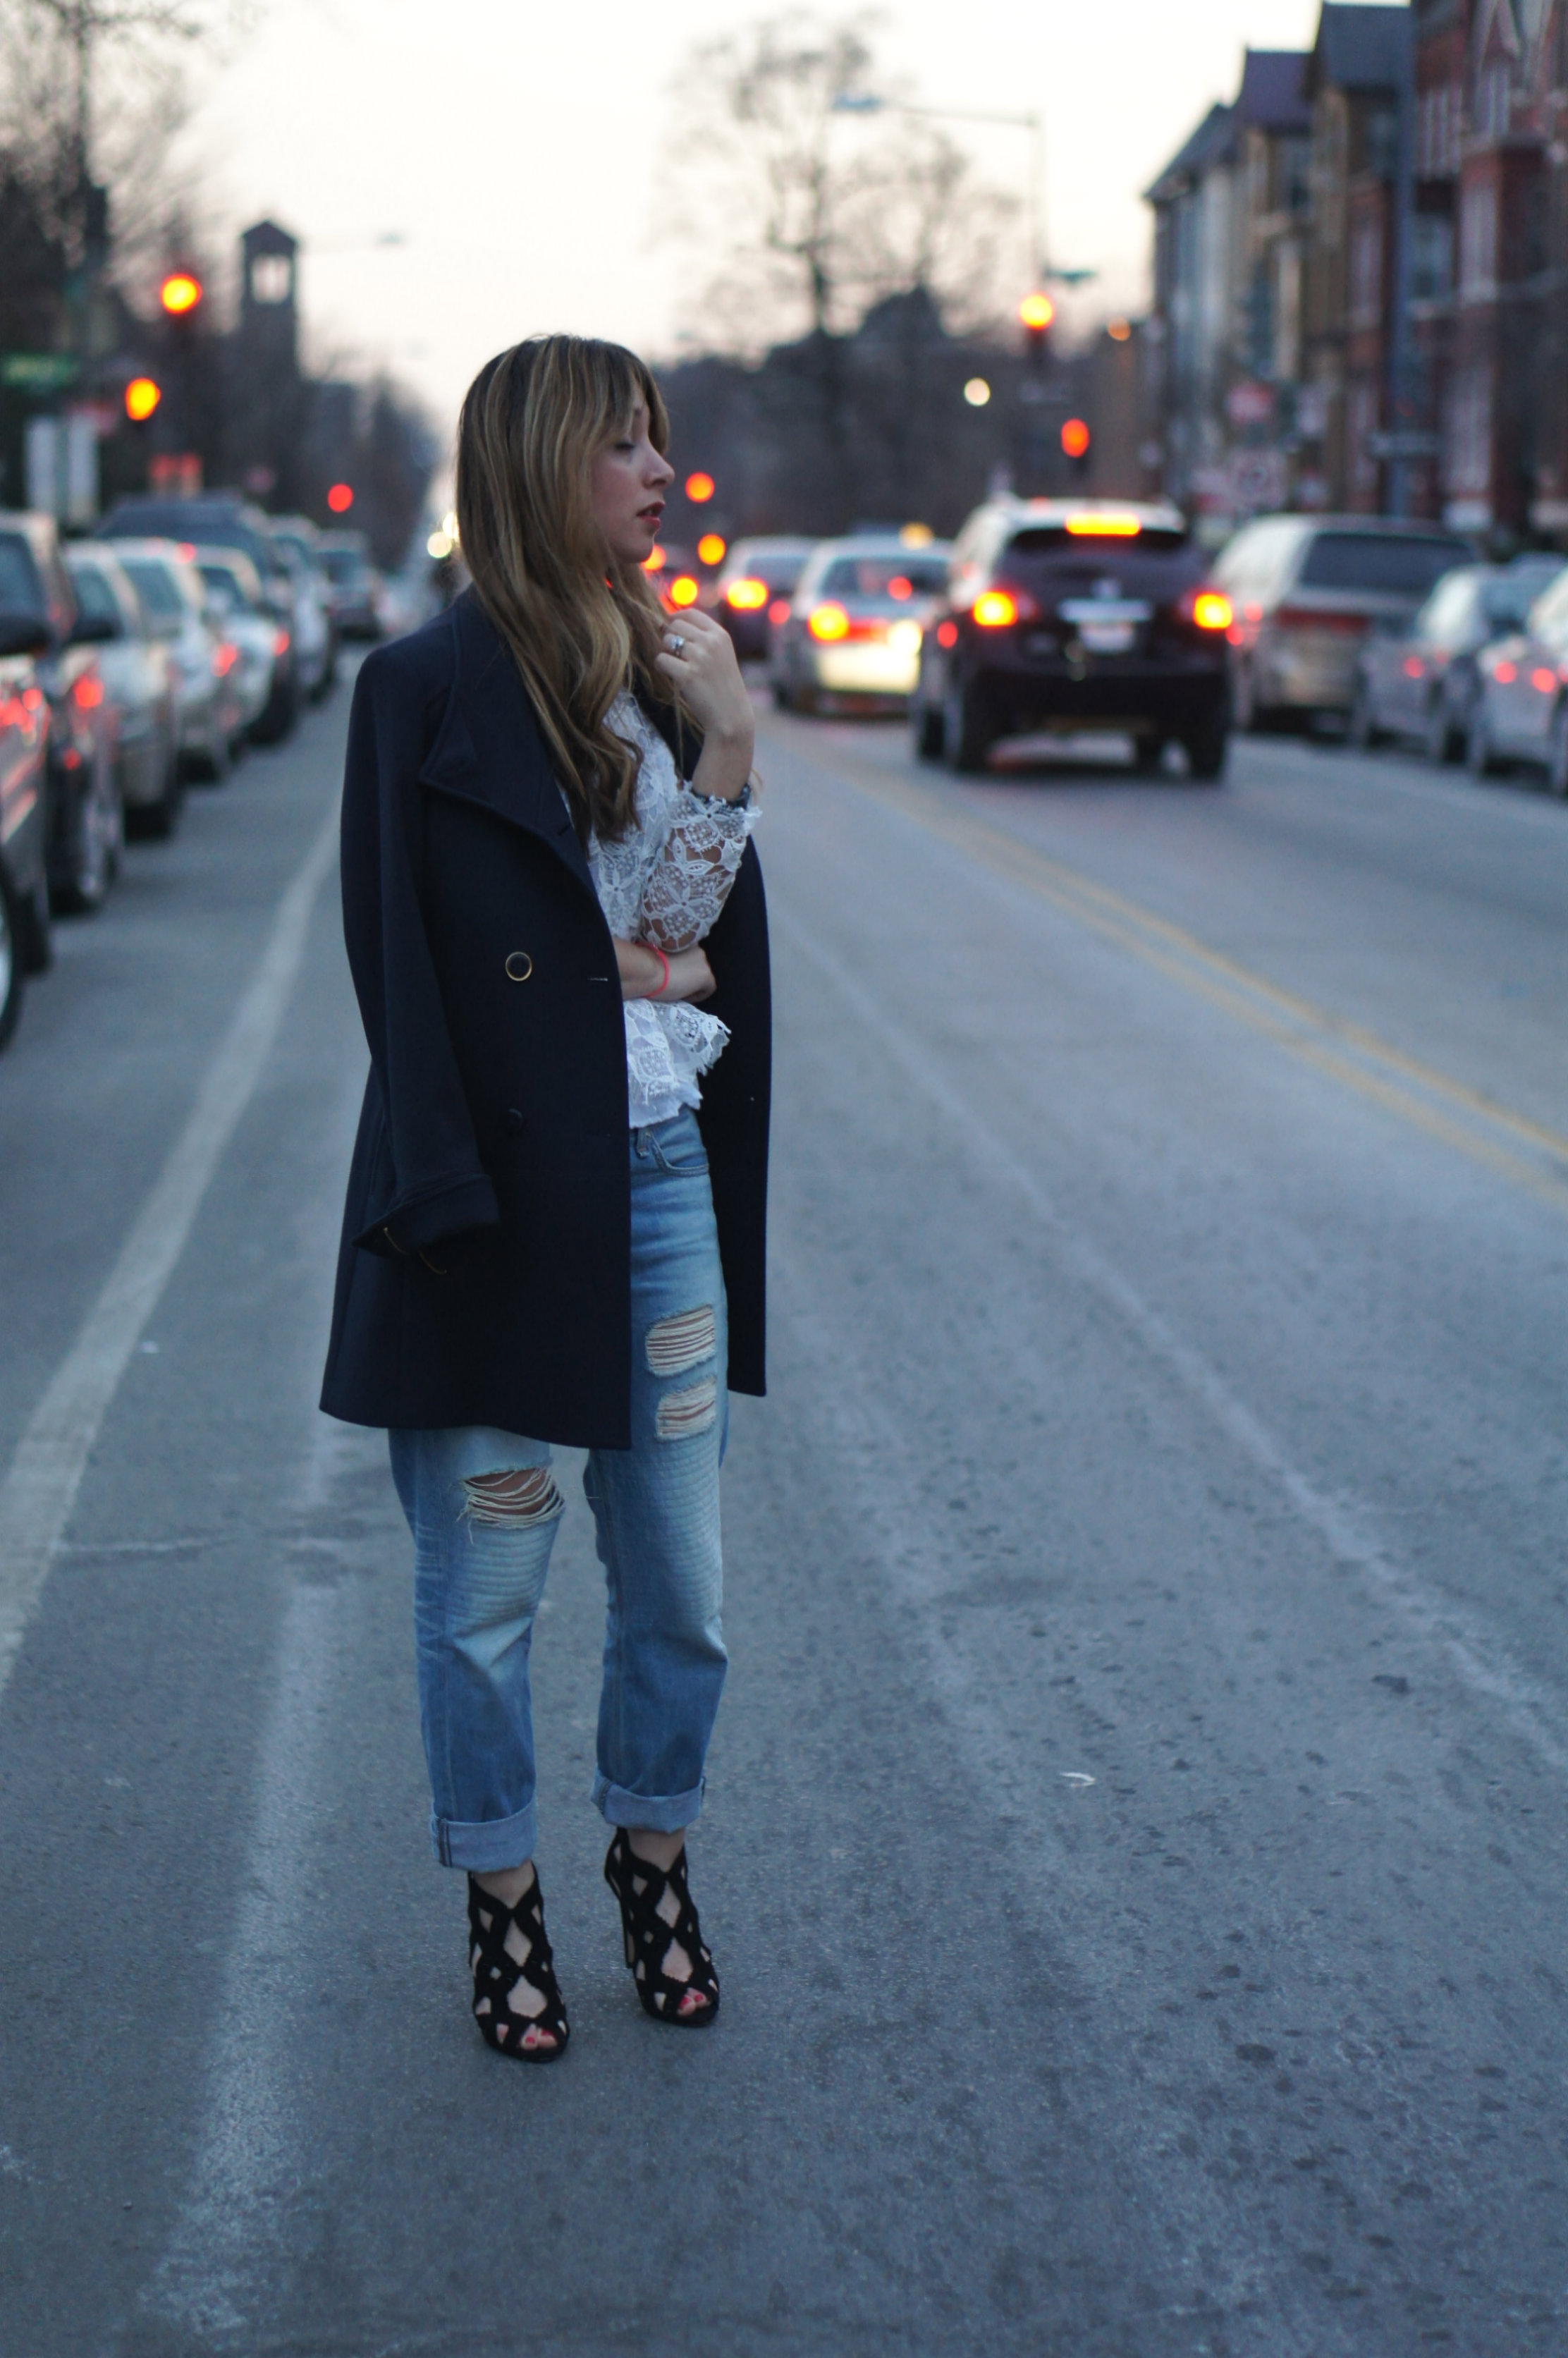 Warmer winter days style